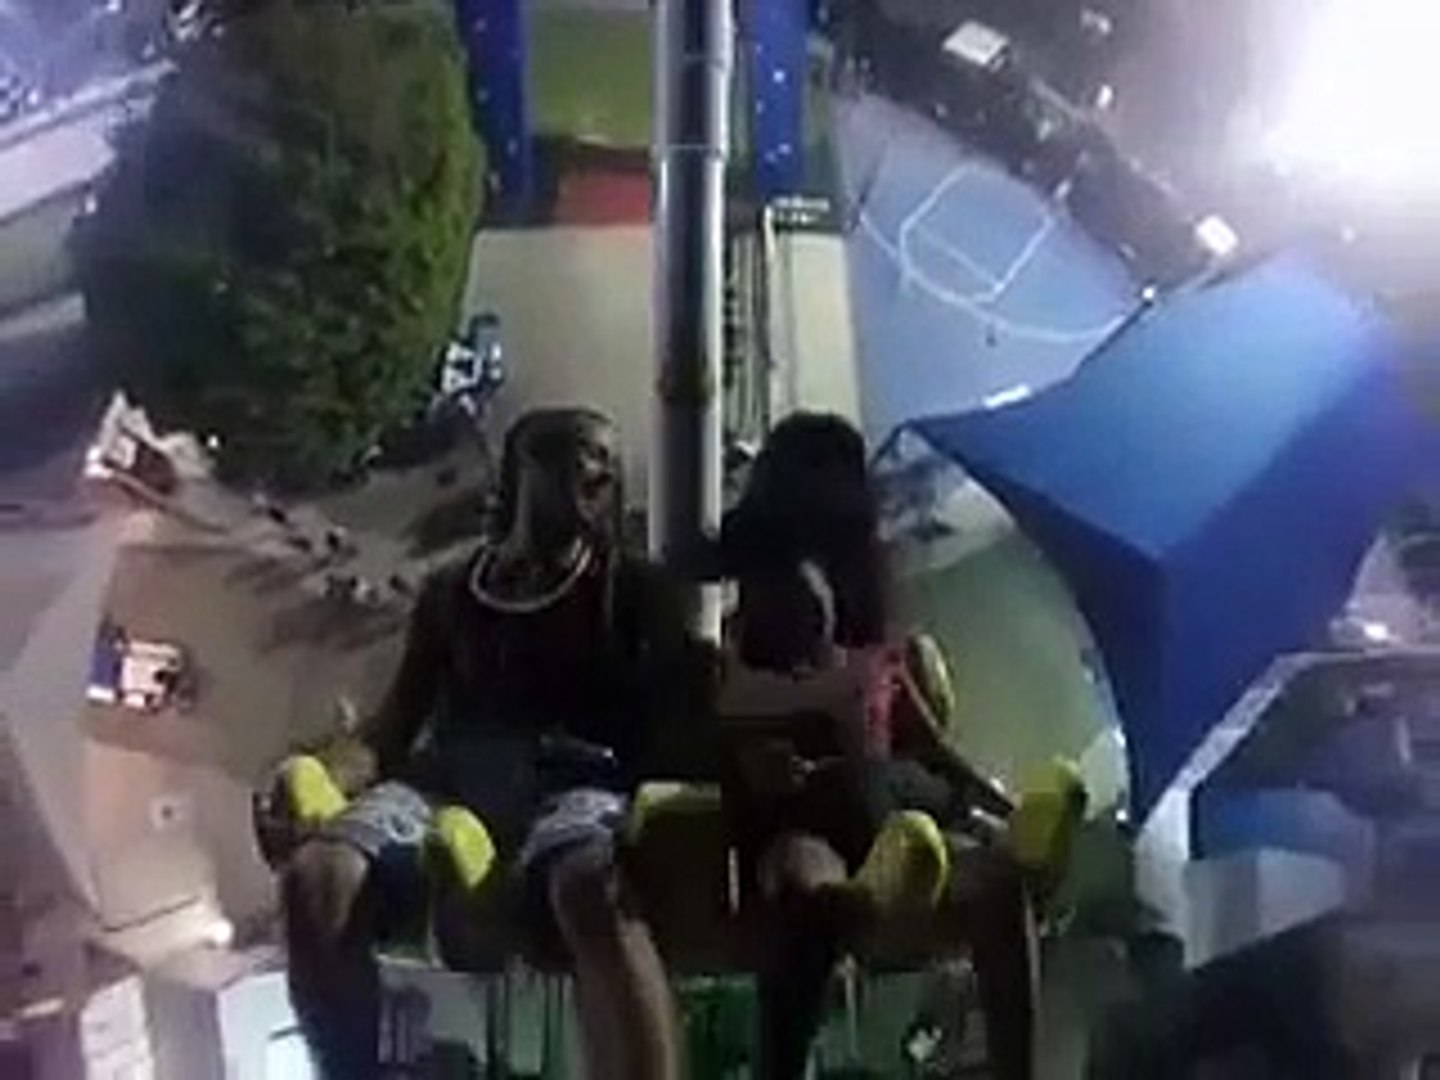 Watch This Girl Pass Out While Freaking Out On An Amusement Park Ride